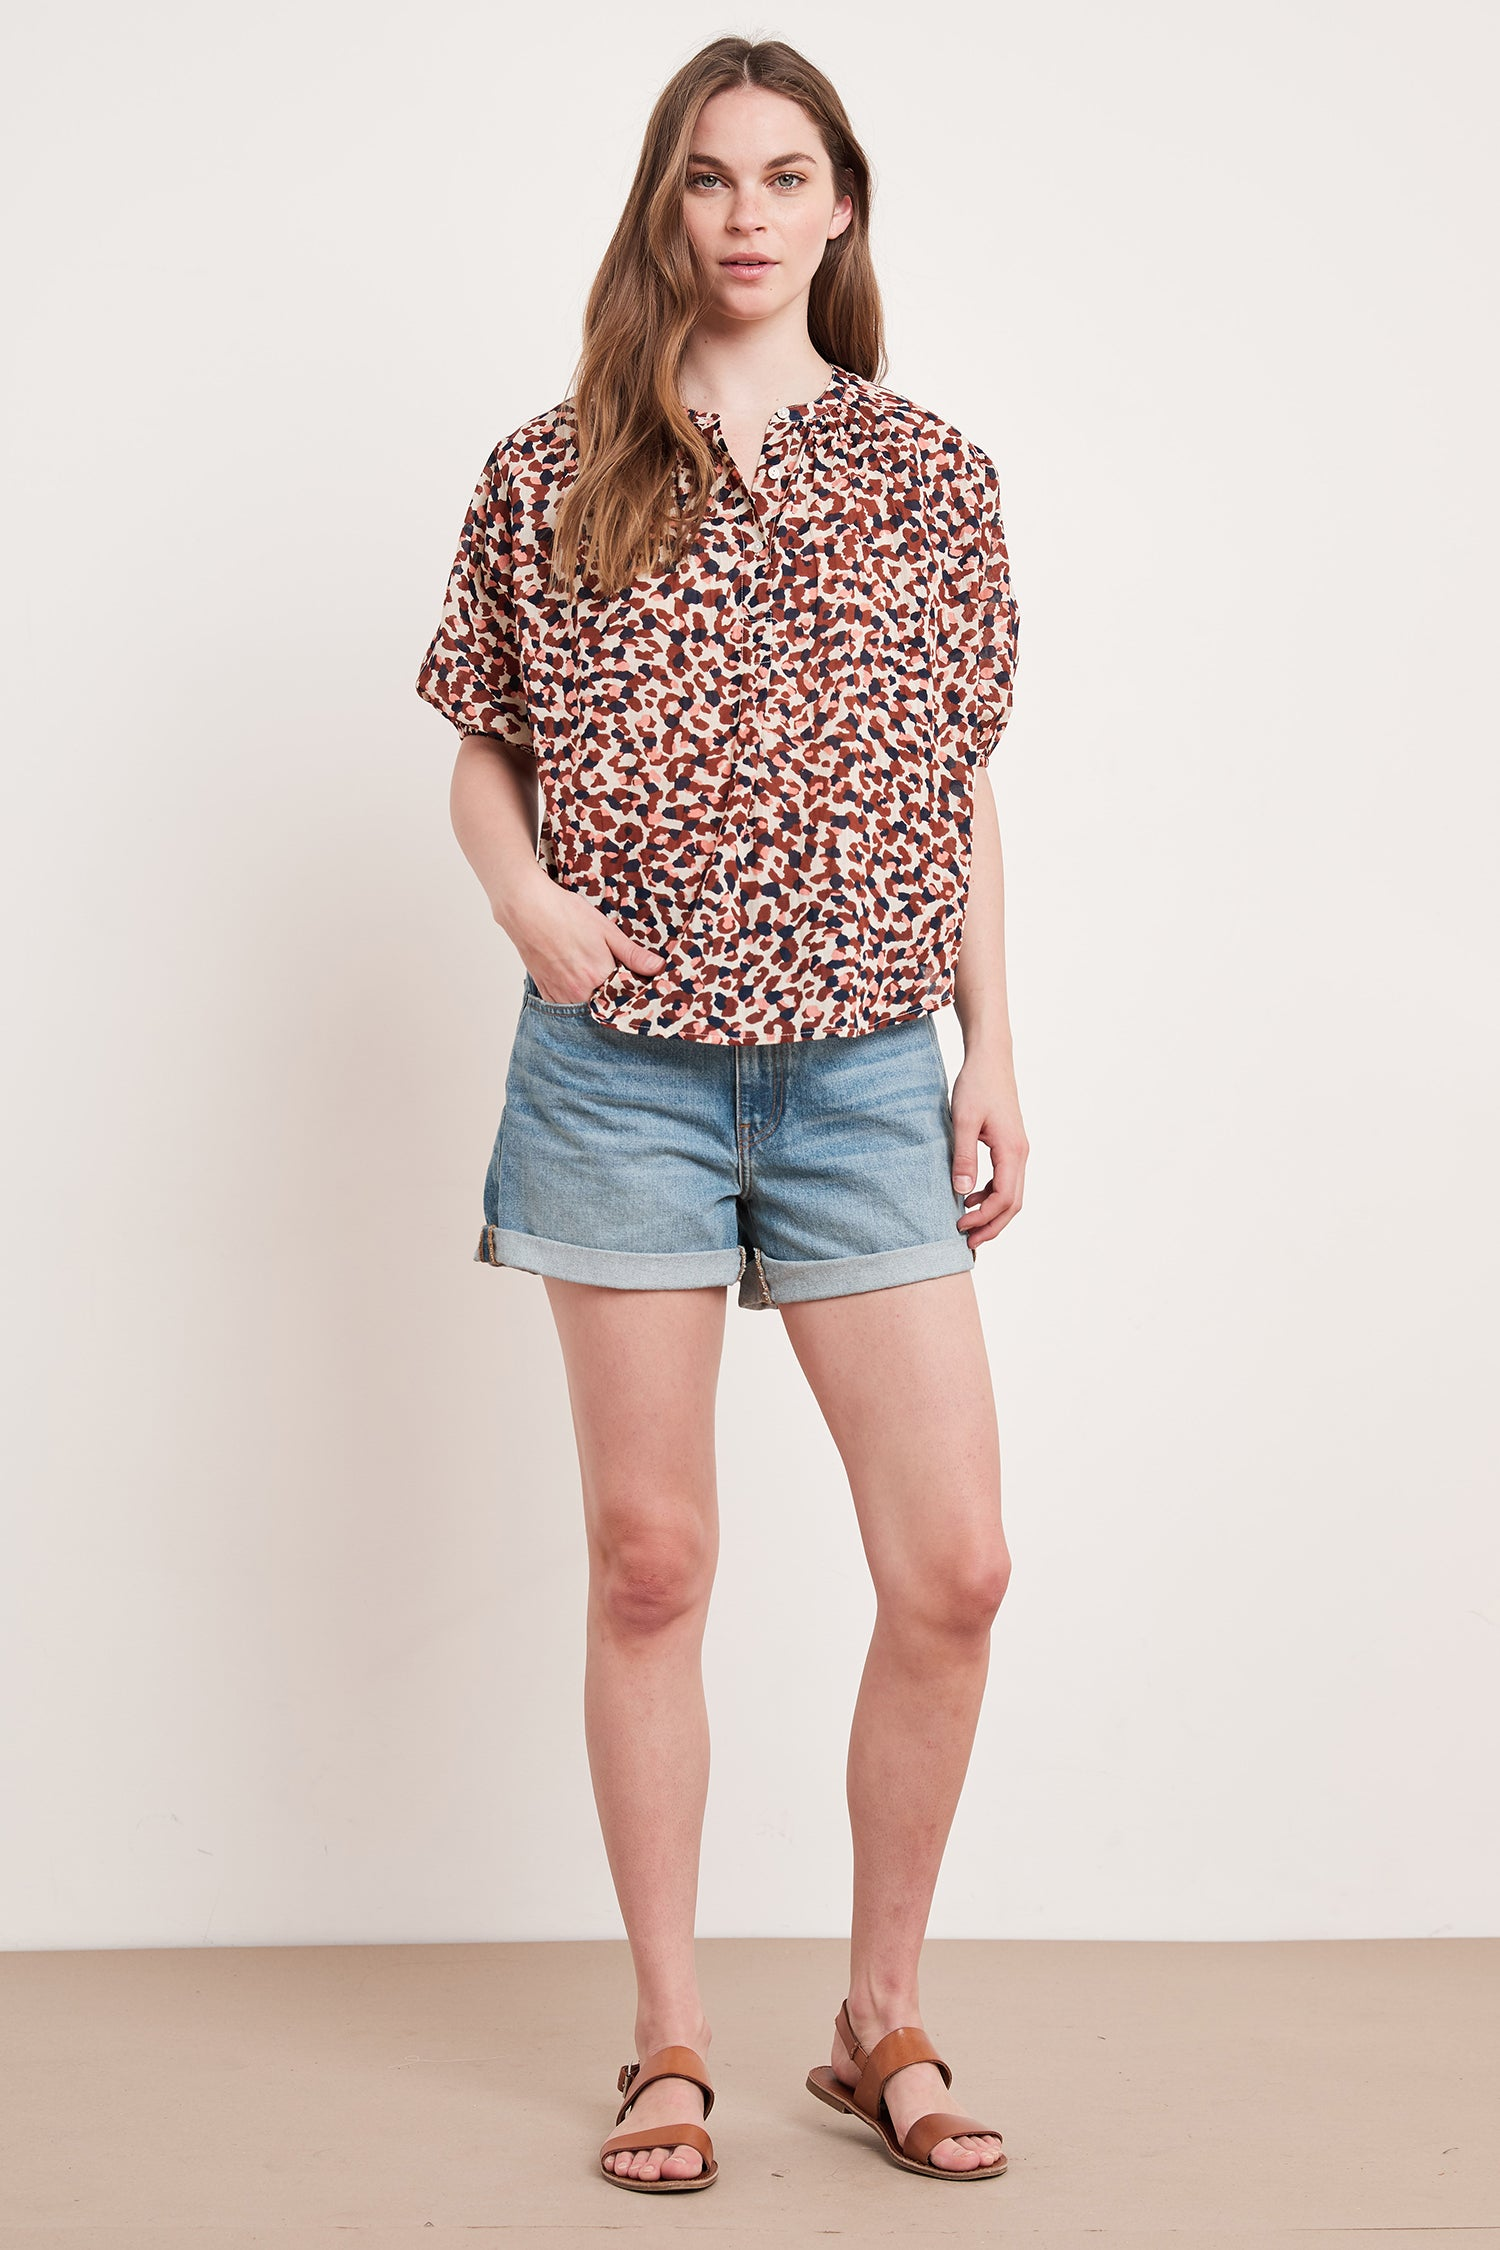 ALBEE PRINTED COTTON VOILE TOP IN BOBCAT